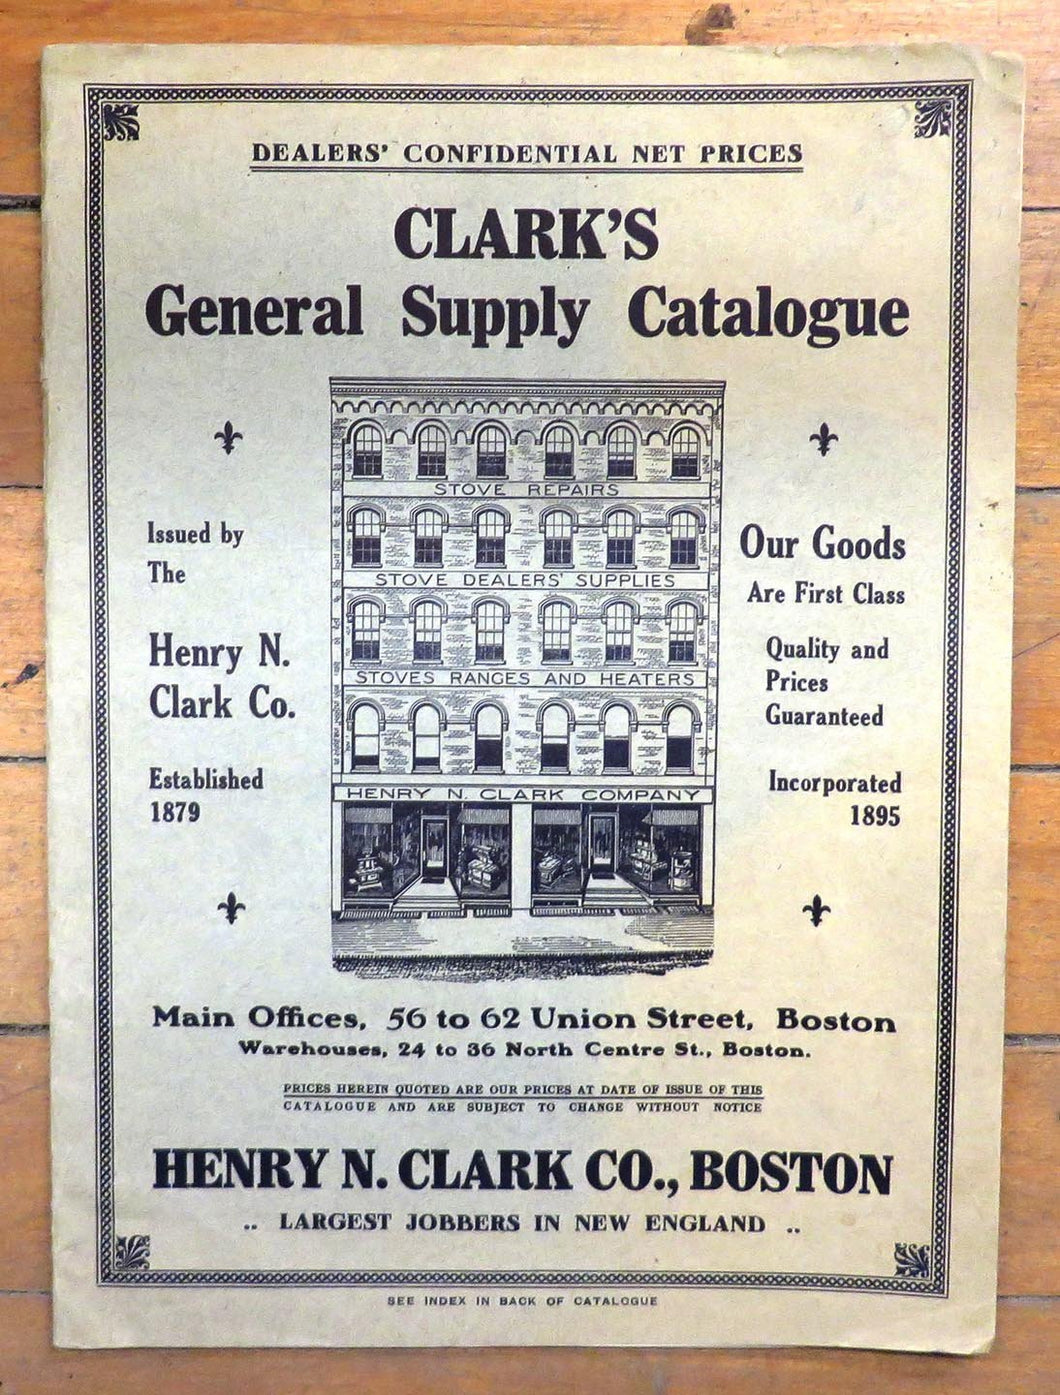 Clark's General Supply Catalogue, 1912